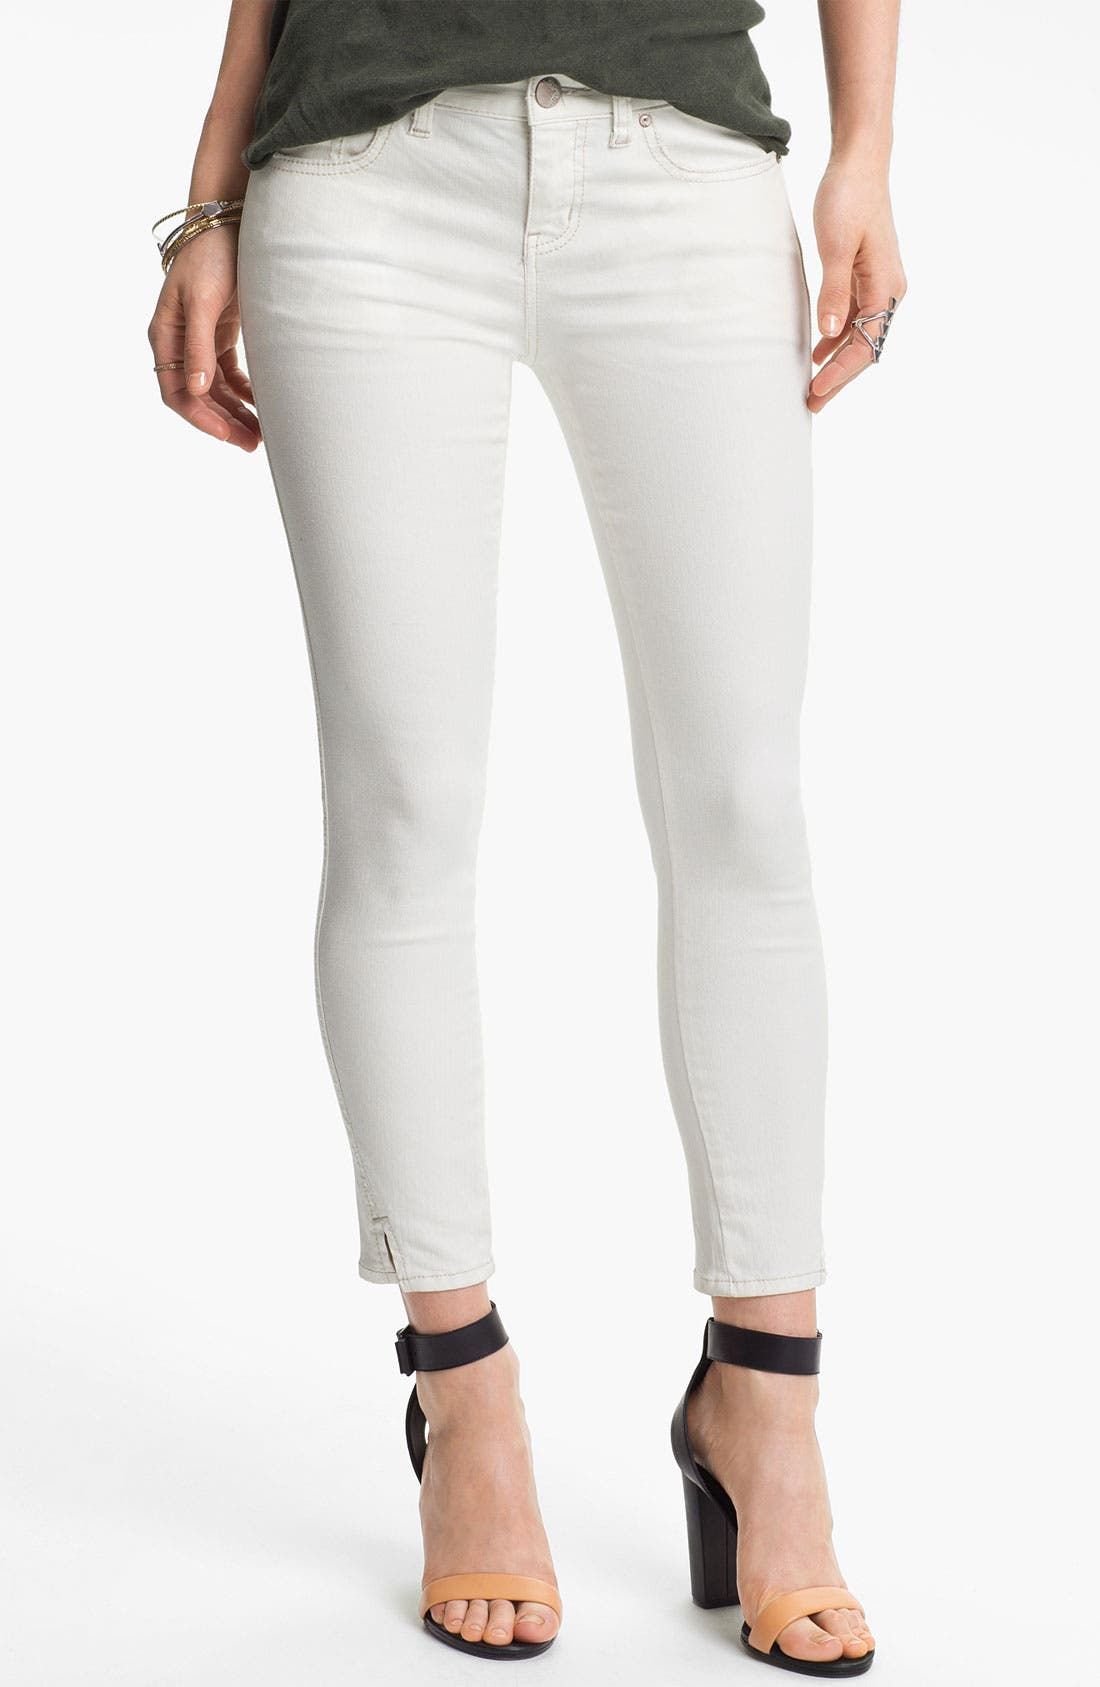 Alternate Image 1 Selected - Free People Crop Stretch Denim Skinny Jeans (White)